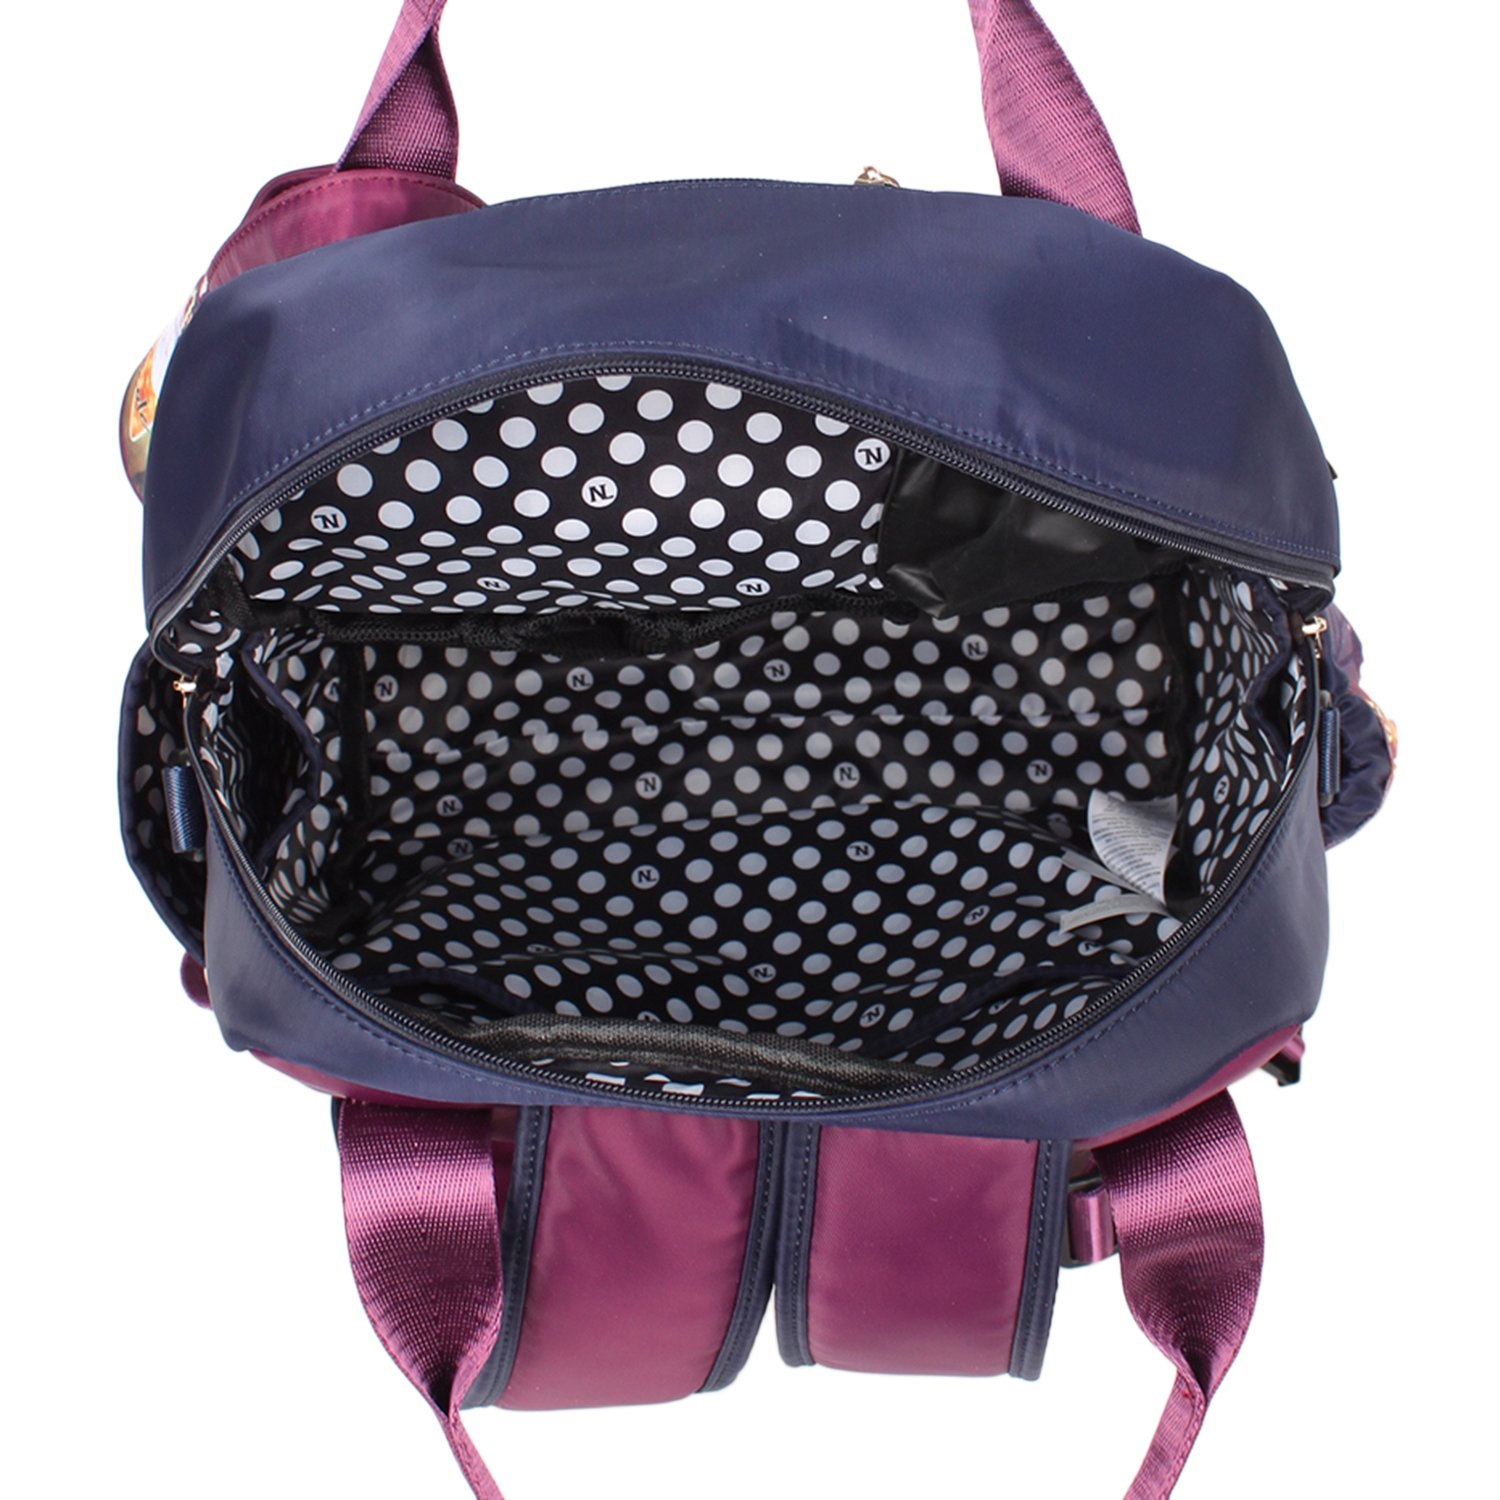 Travel Backpack Changing Mat /& Removable Pouches Nicole Lee Nicole Lee Diaper Backpack wild Eclypse